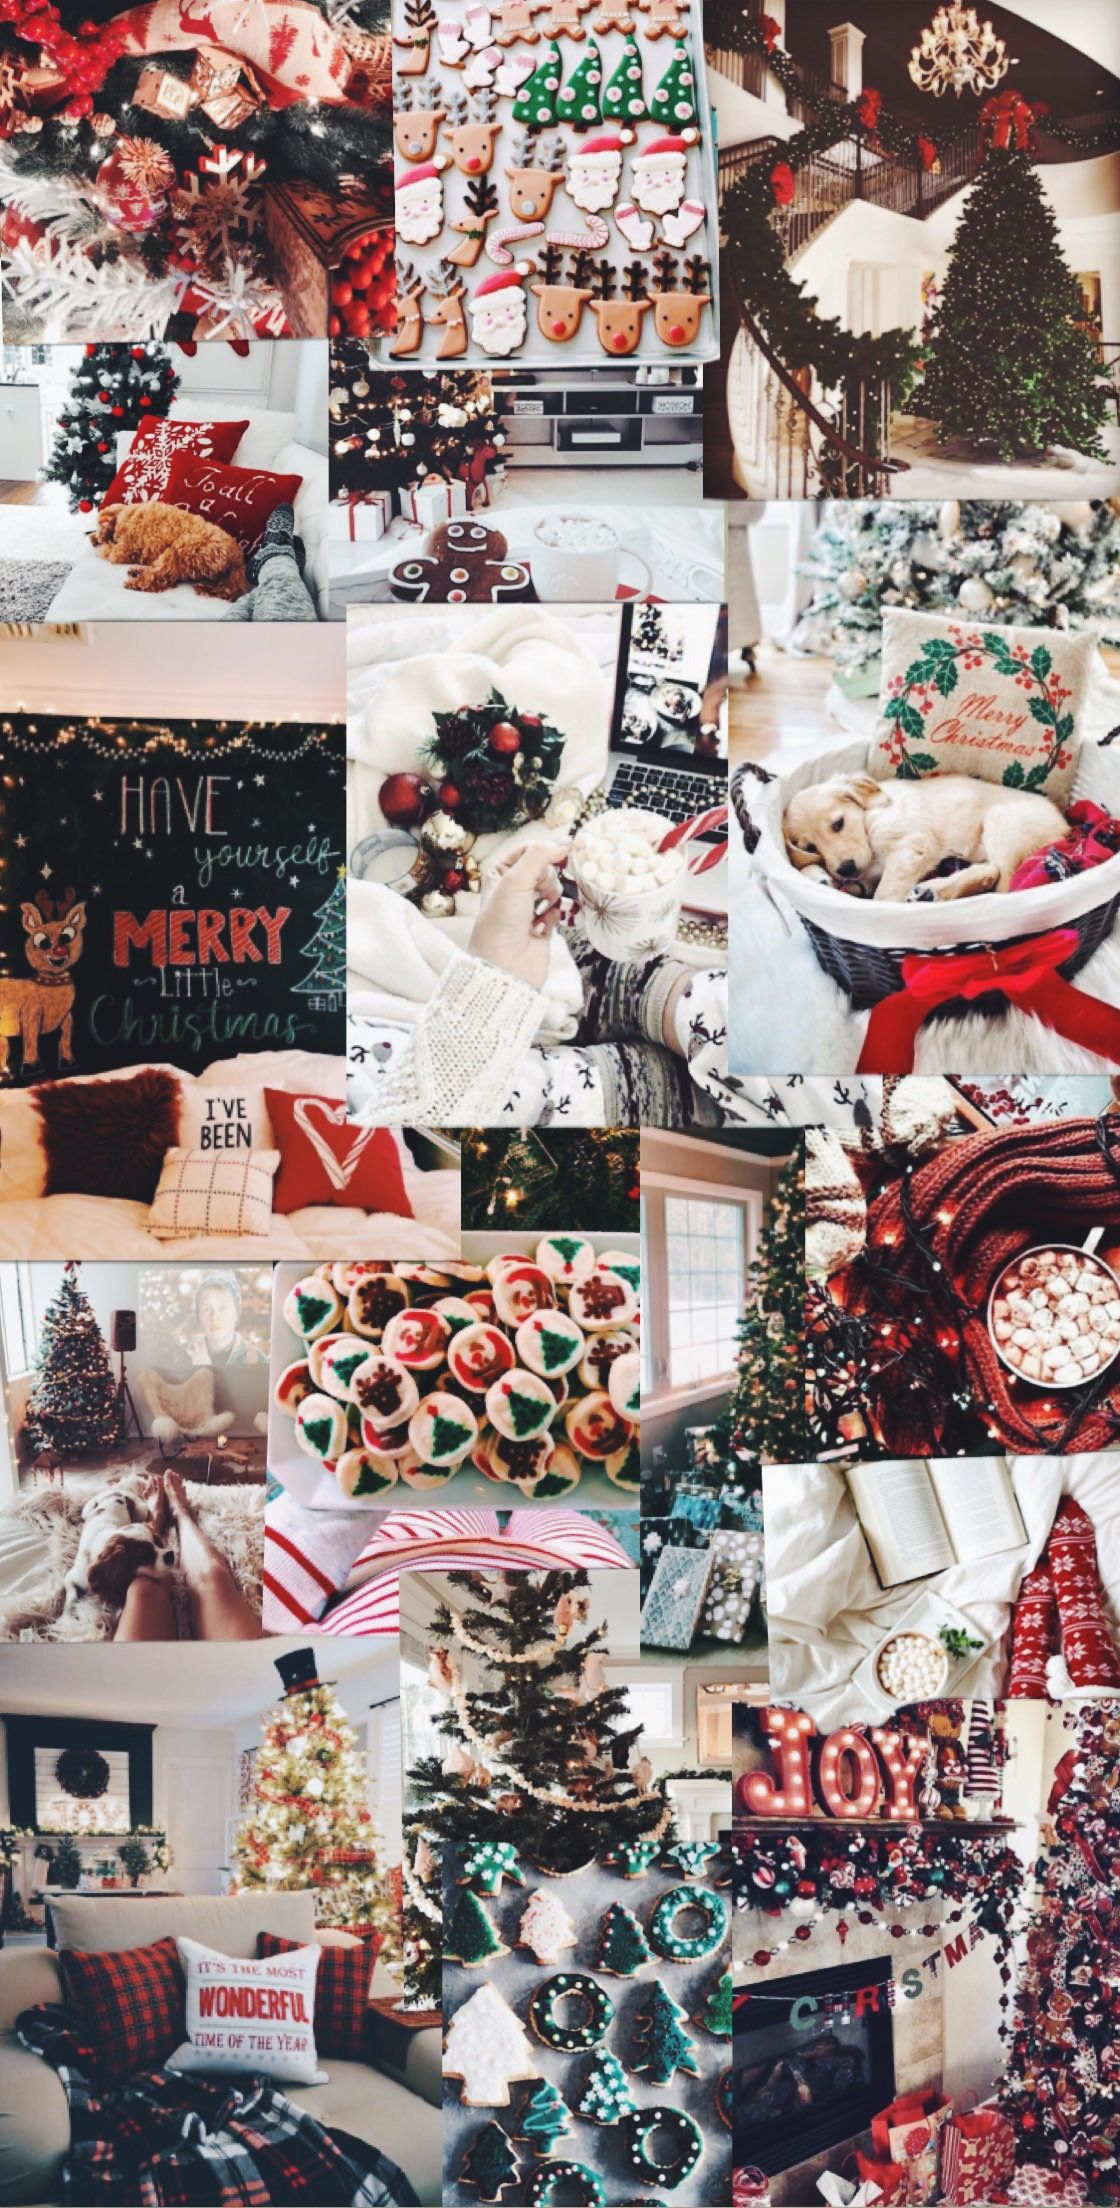 Pin By Taylor On Iphone Wallpapers Christmas Wallpapers Tumblr Merry Christmas Wallpaper Christmas Wallpaper